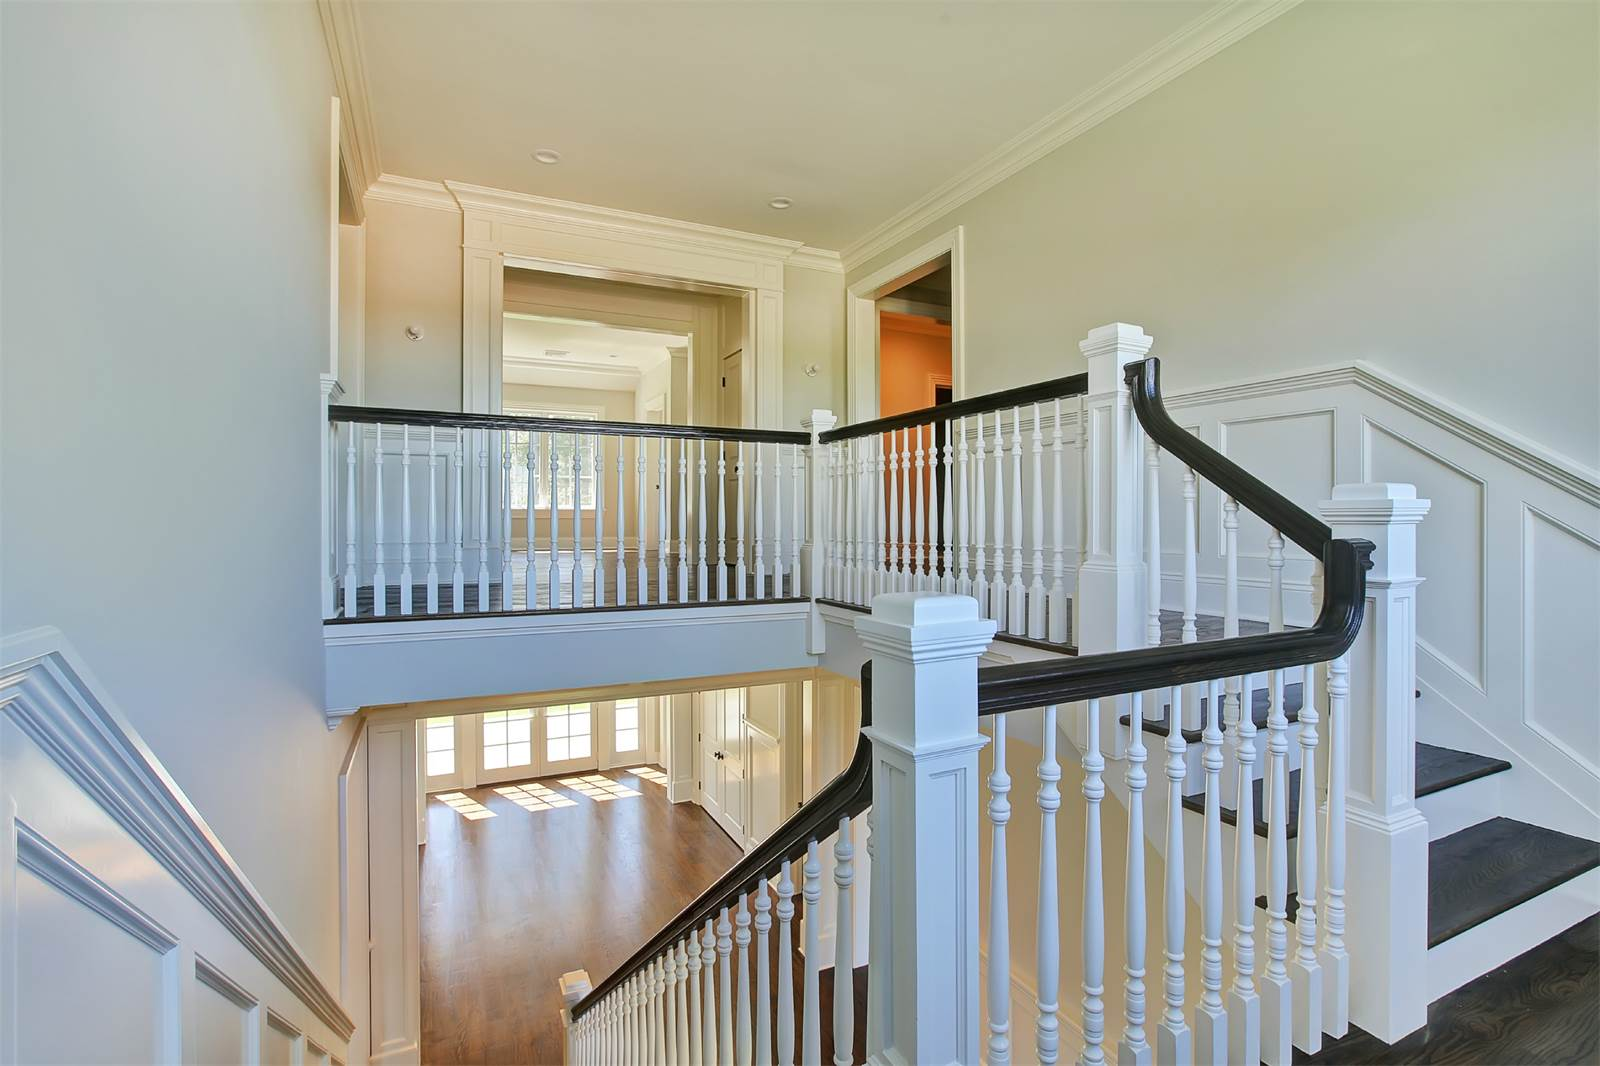 NRGY Homes & Construction